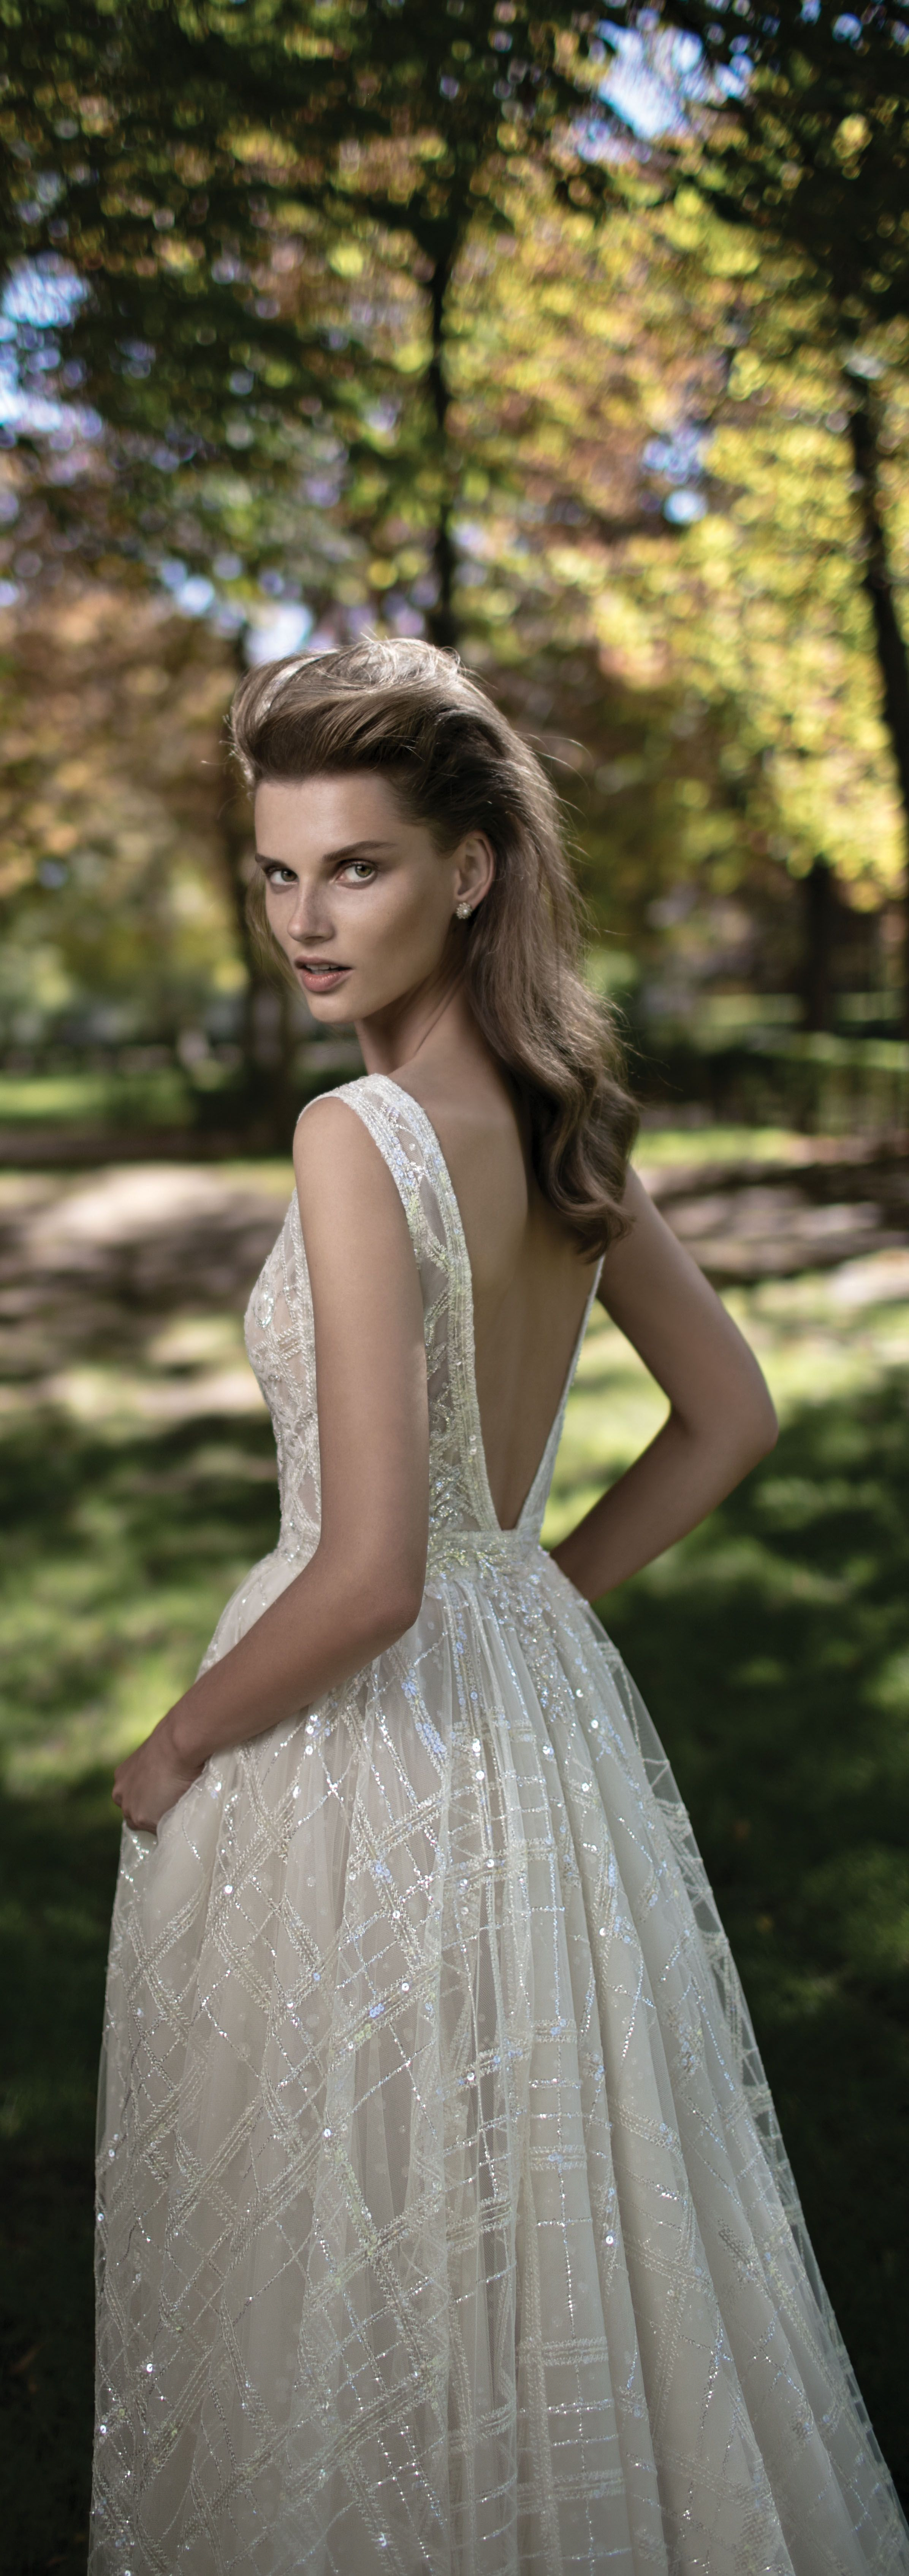 Used berta wedding dress  BERTA fairy tale uc  My Wedding Ideas  Pinterest  Wedding dress